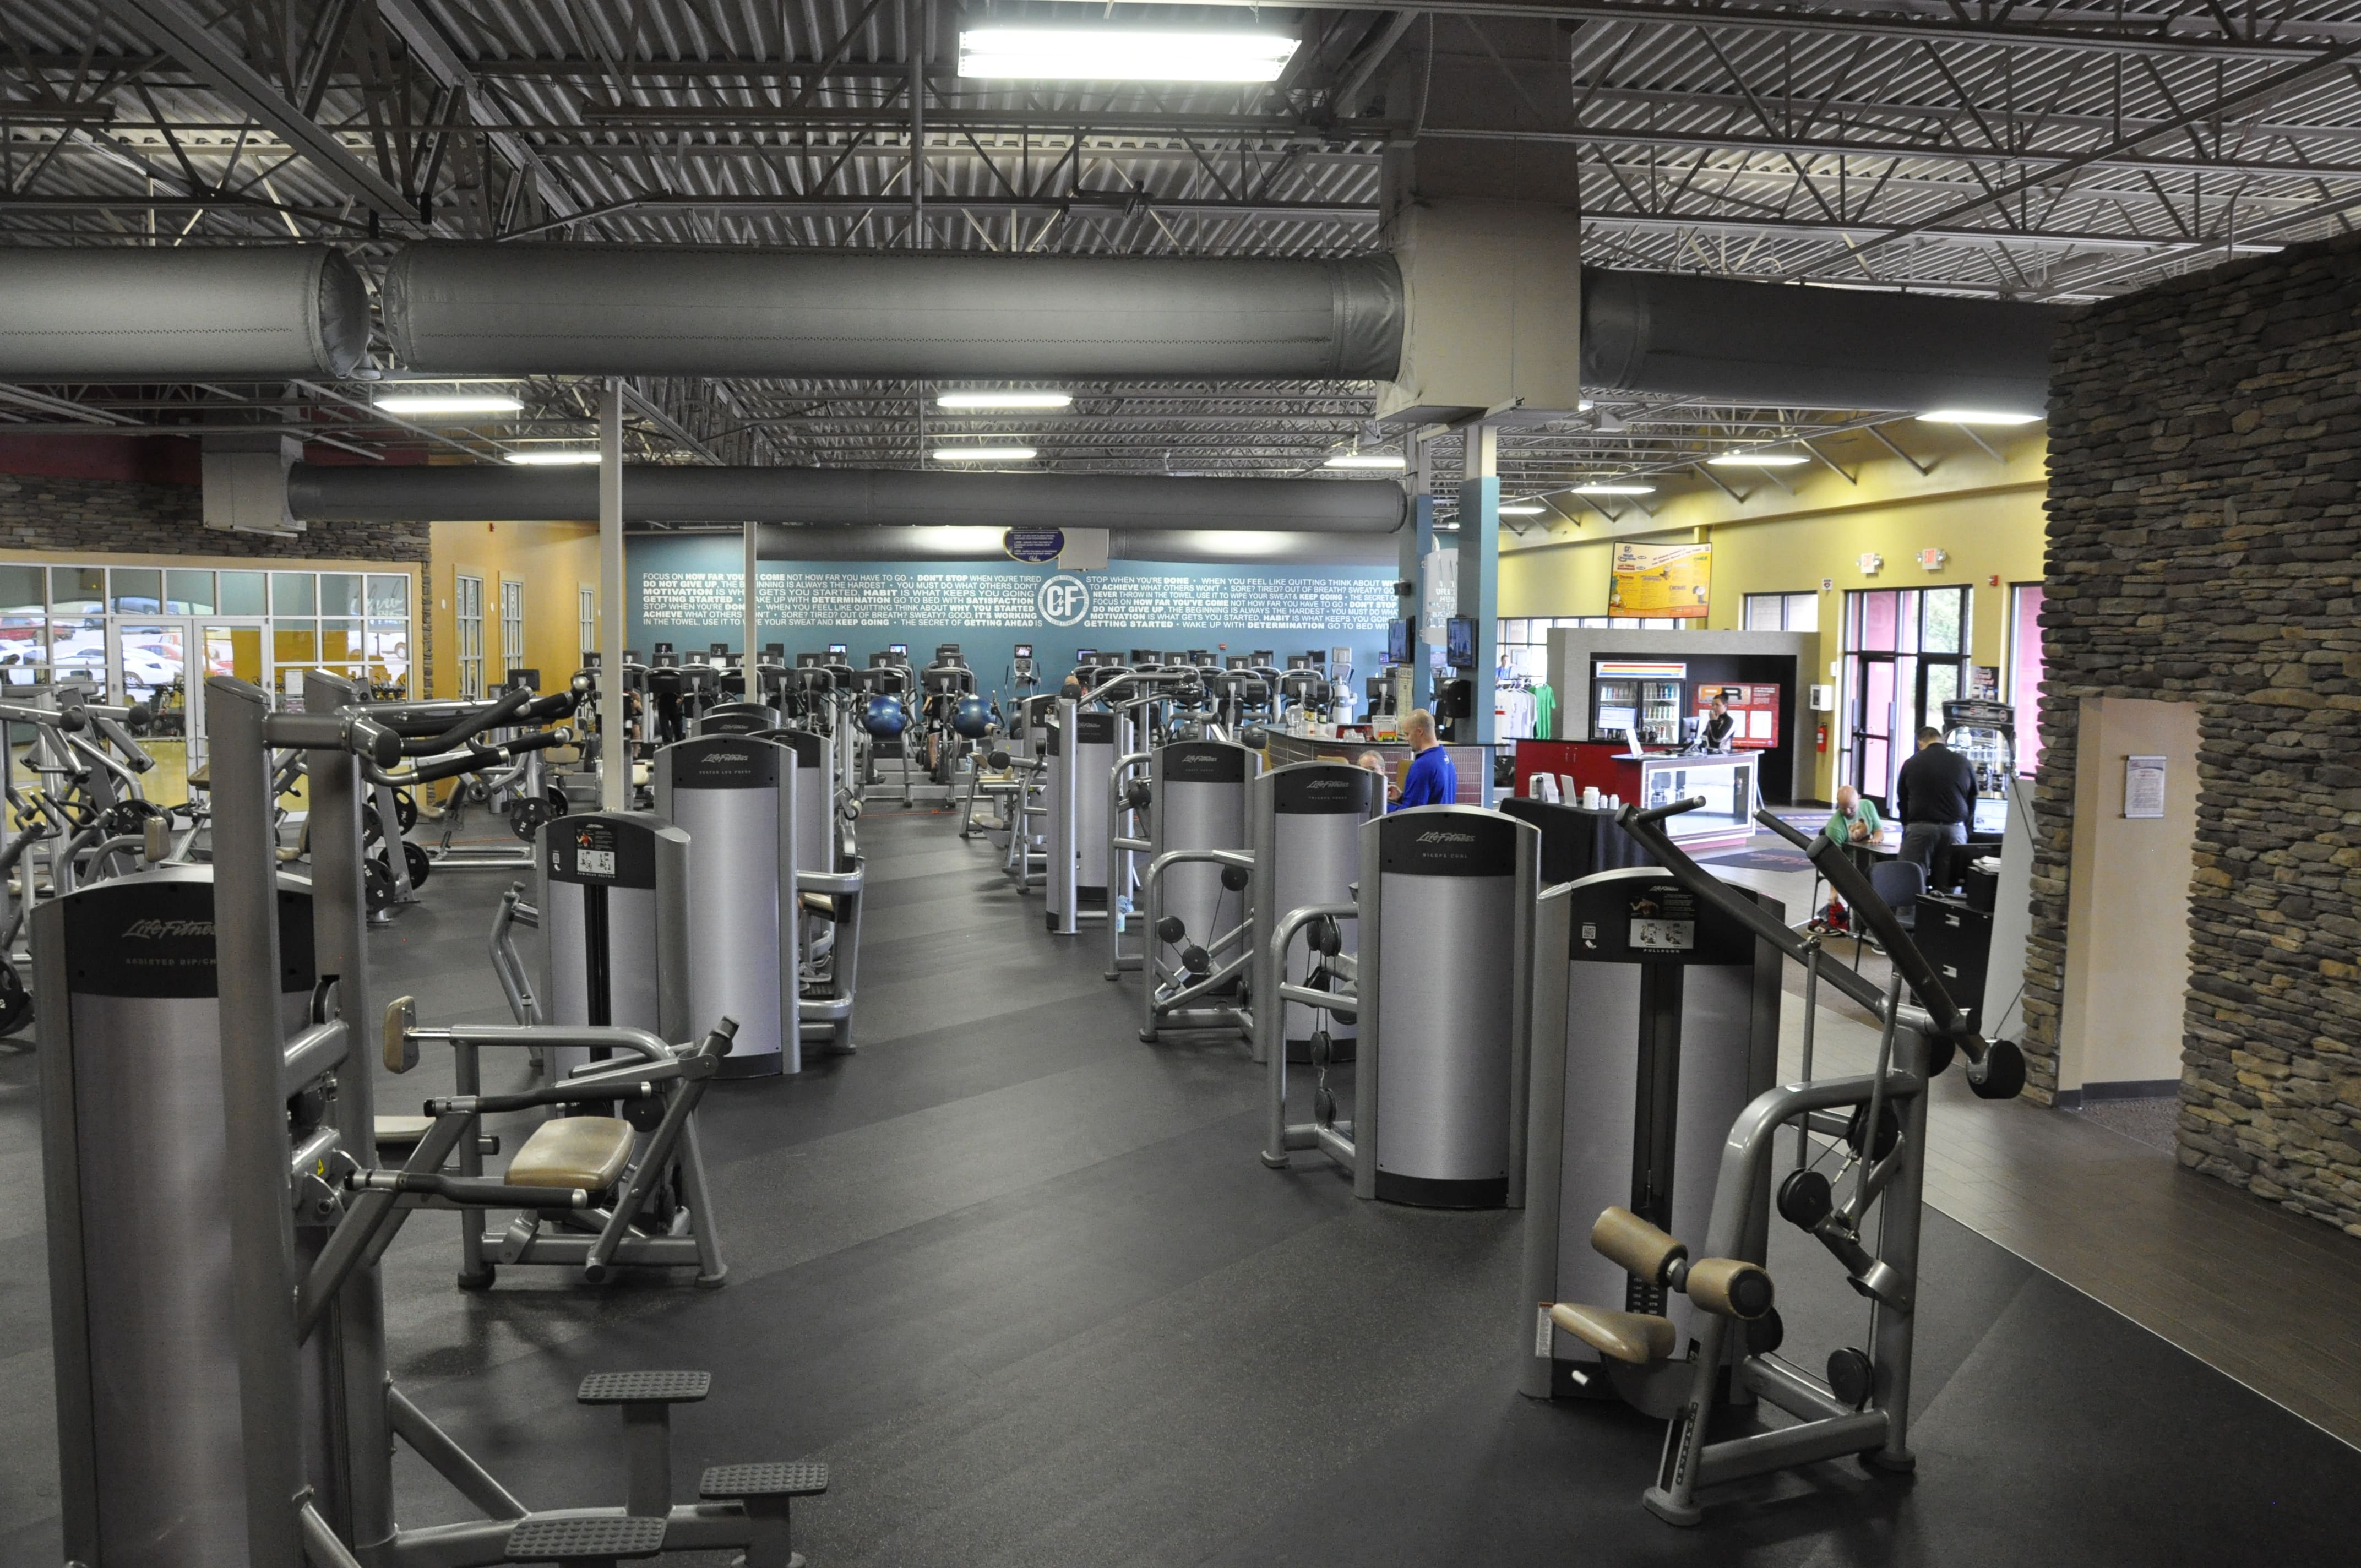 Club Fitness image 6